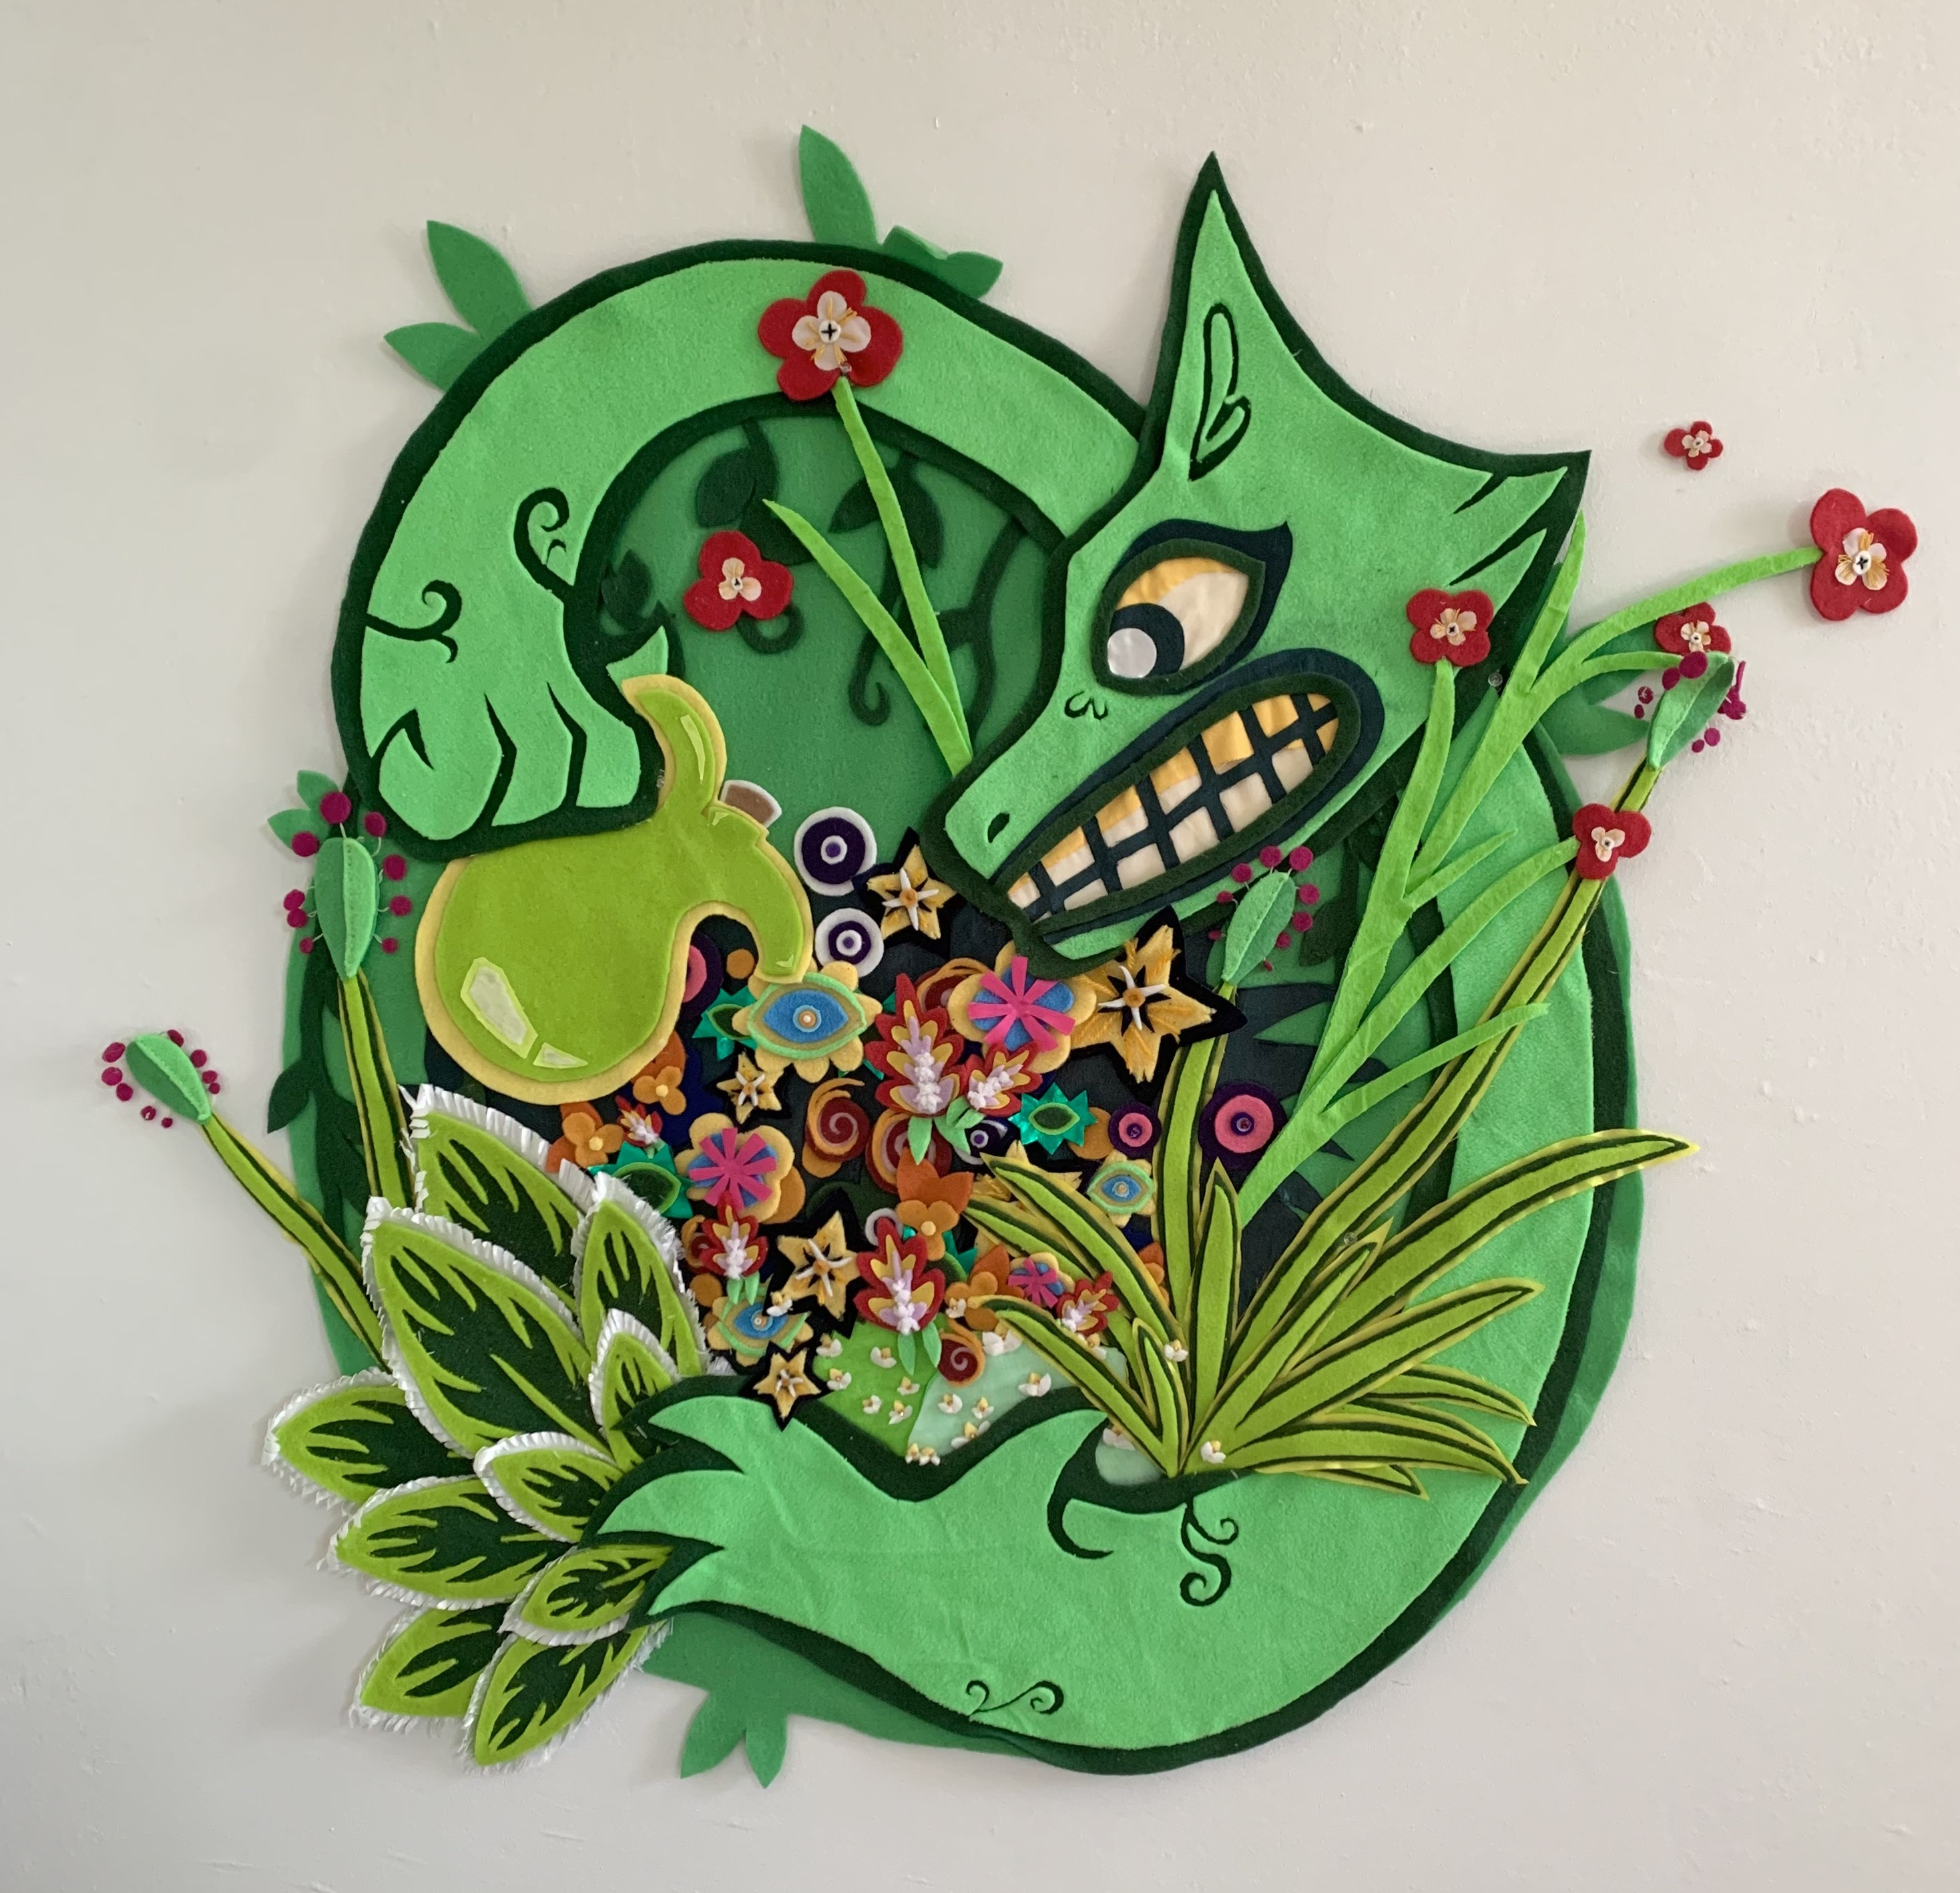 The piece is green and circular. A large bright green dog with yellow eyes and teeth and swirly vine markings on its wrists has its arms stretched around the edge of the whole piece. He is holding a lime green watering pot in his left hand, pouring water